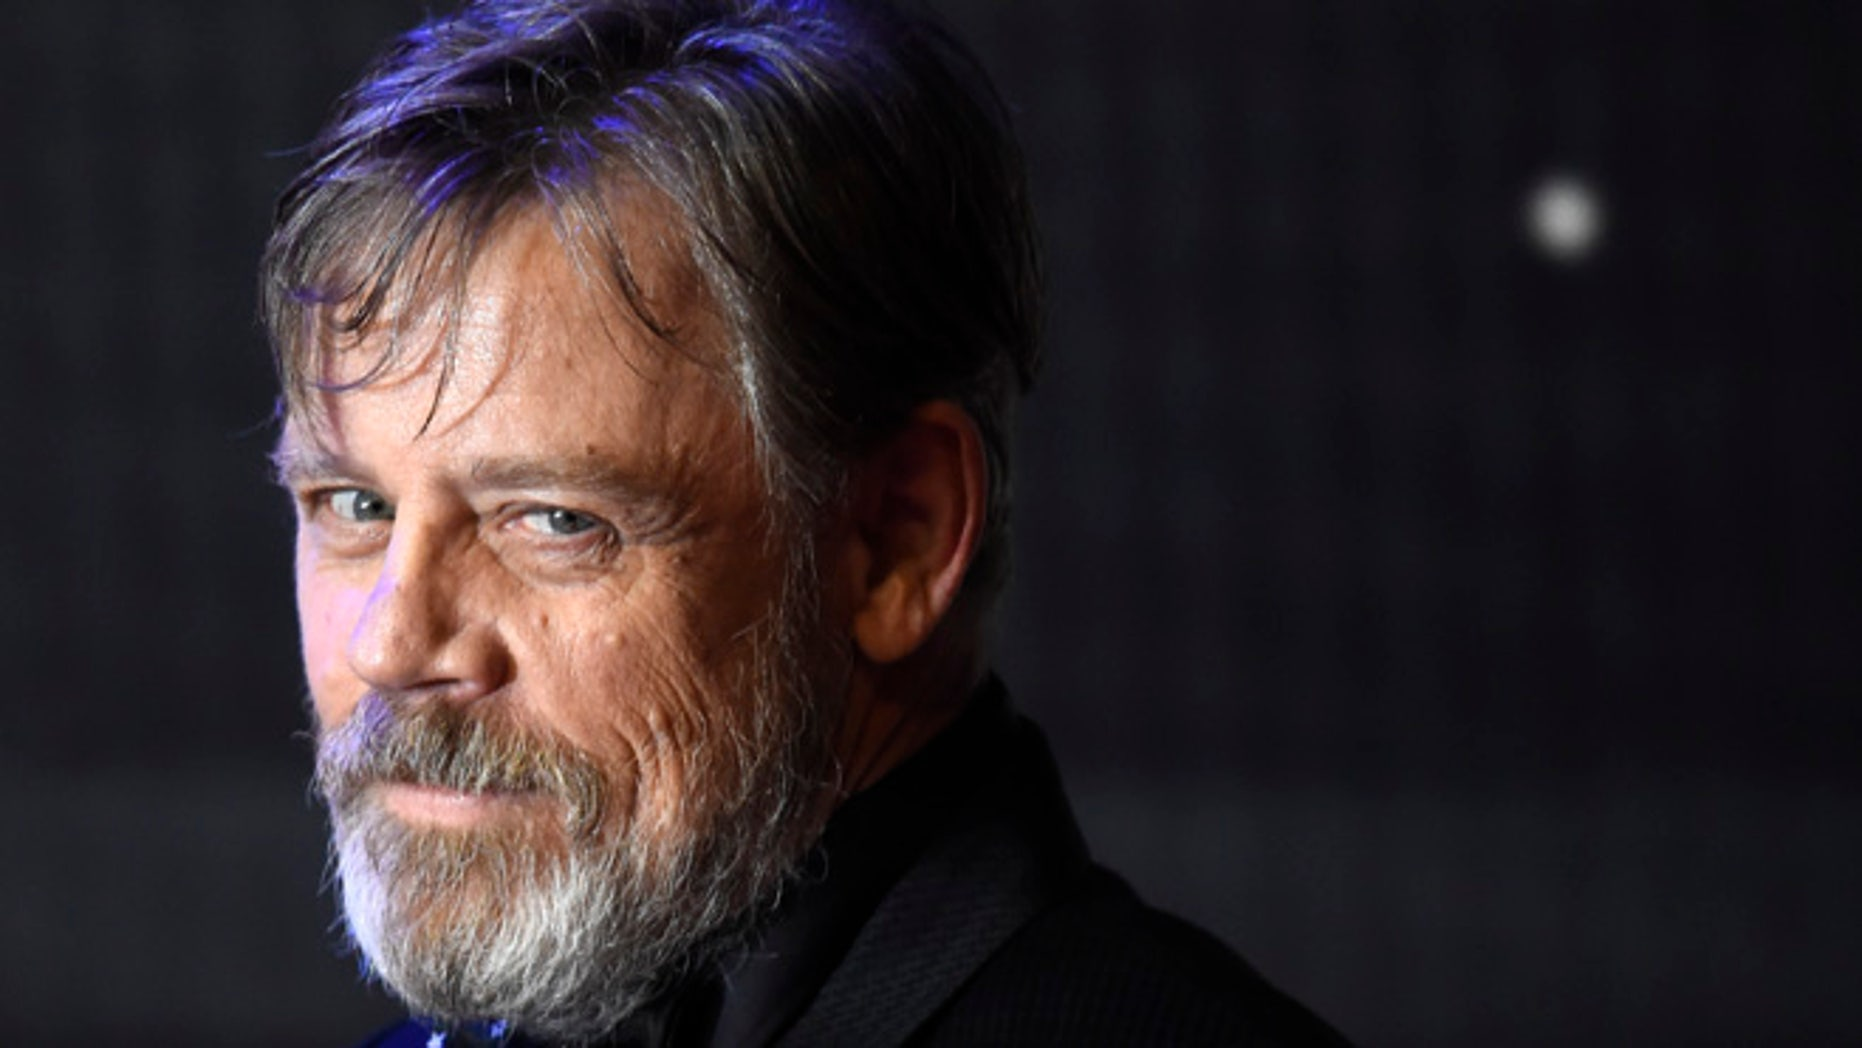 Mark Hamill shared a photo of himself as Luke Skywalker on the first day of filming 'Star Wars.'